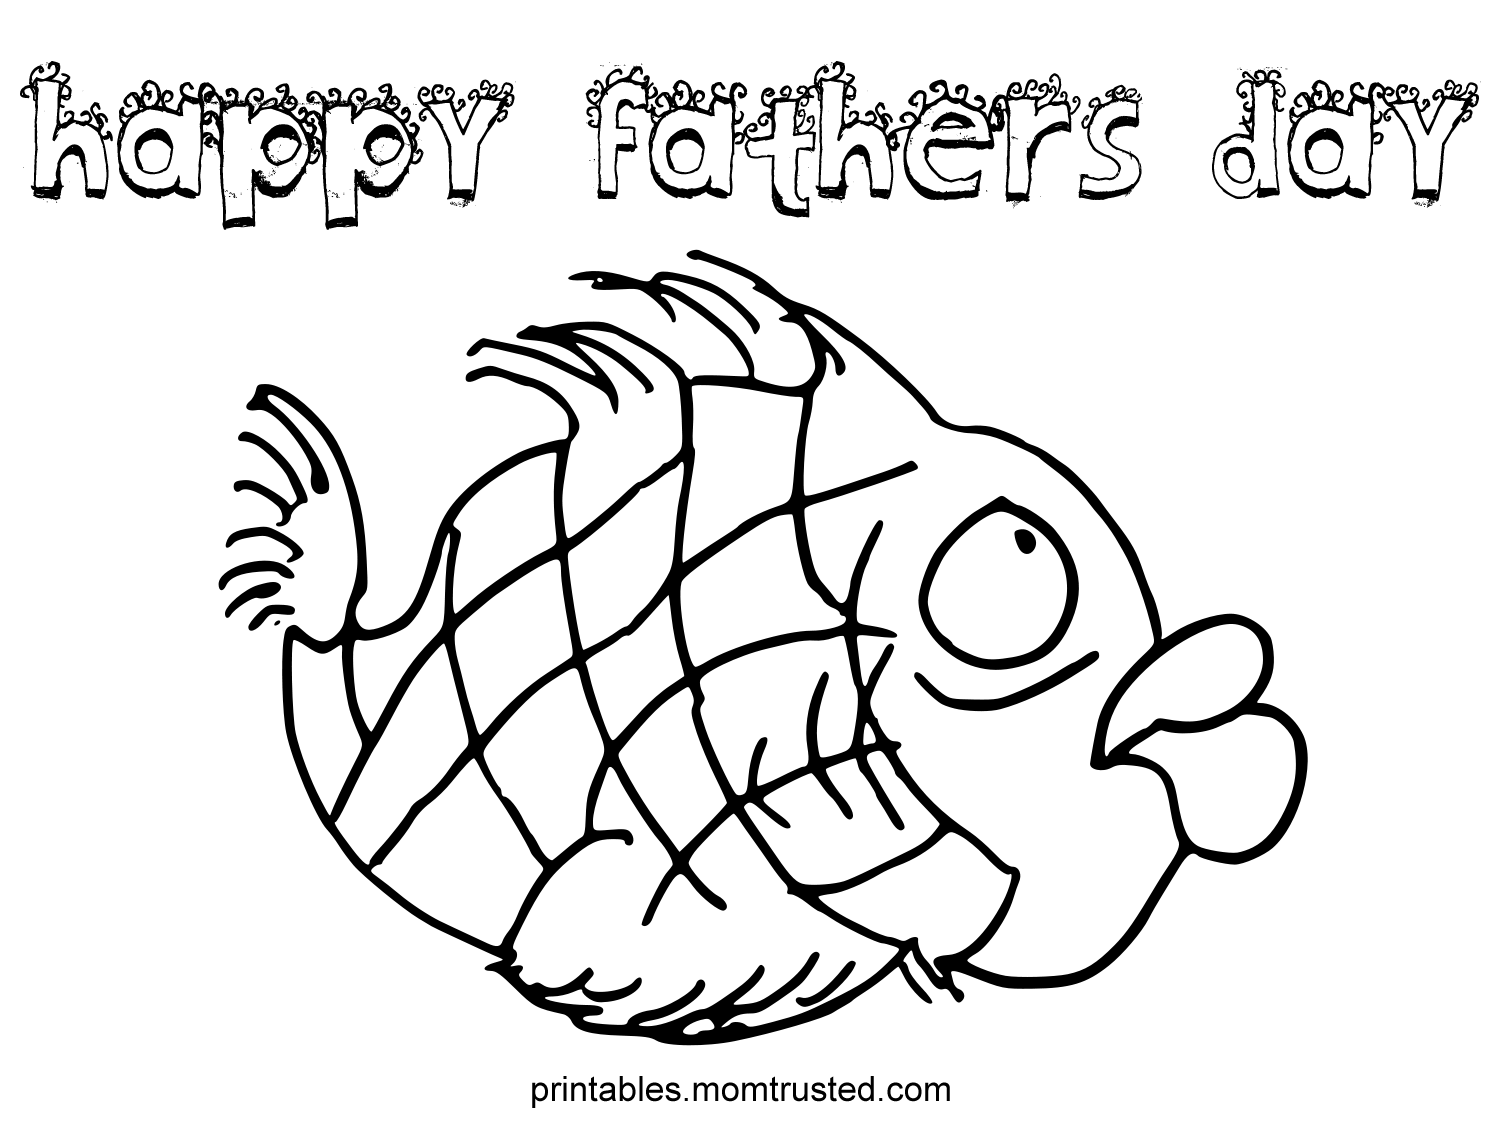 Childrens fathers day coloring pages - Happy Father S Day Fish Coloring Page Preschool Activities And Printablespreschool Activities And Printables